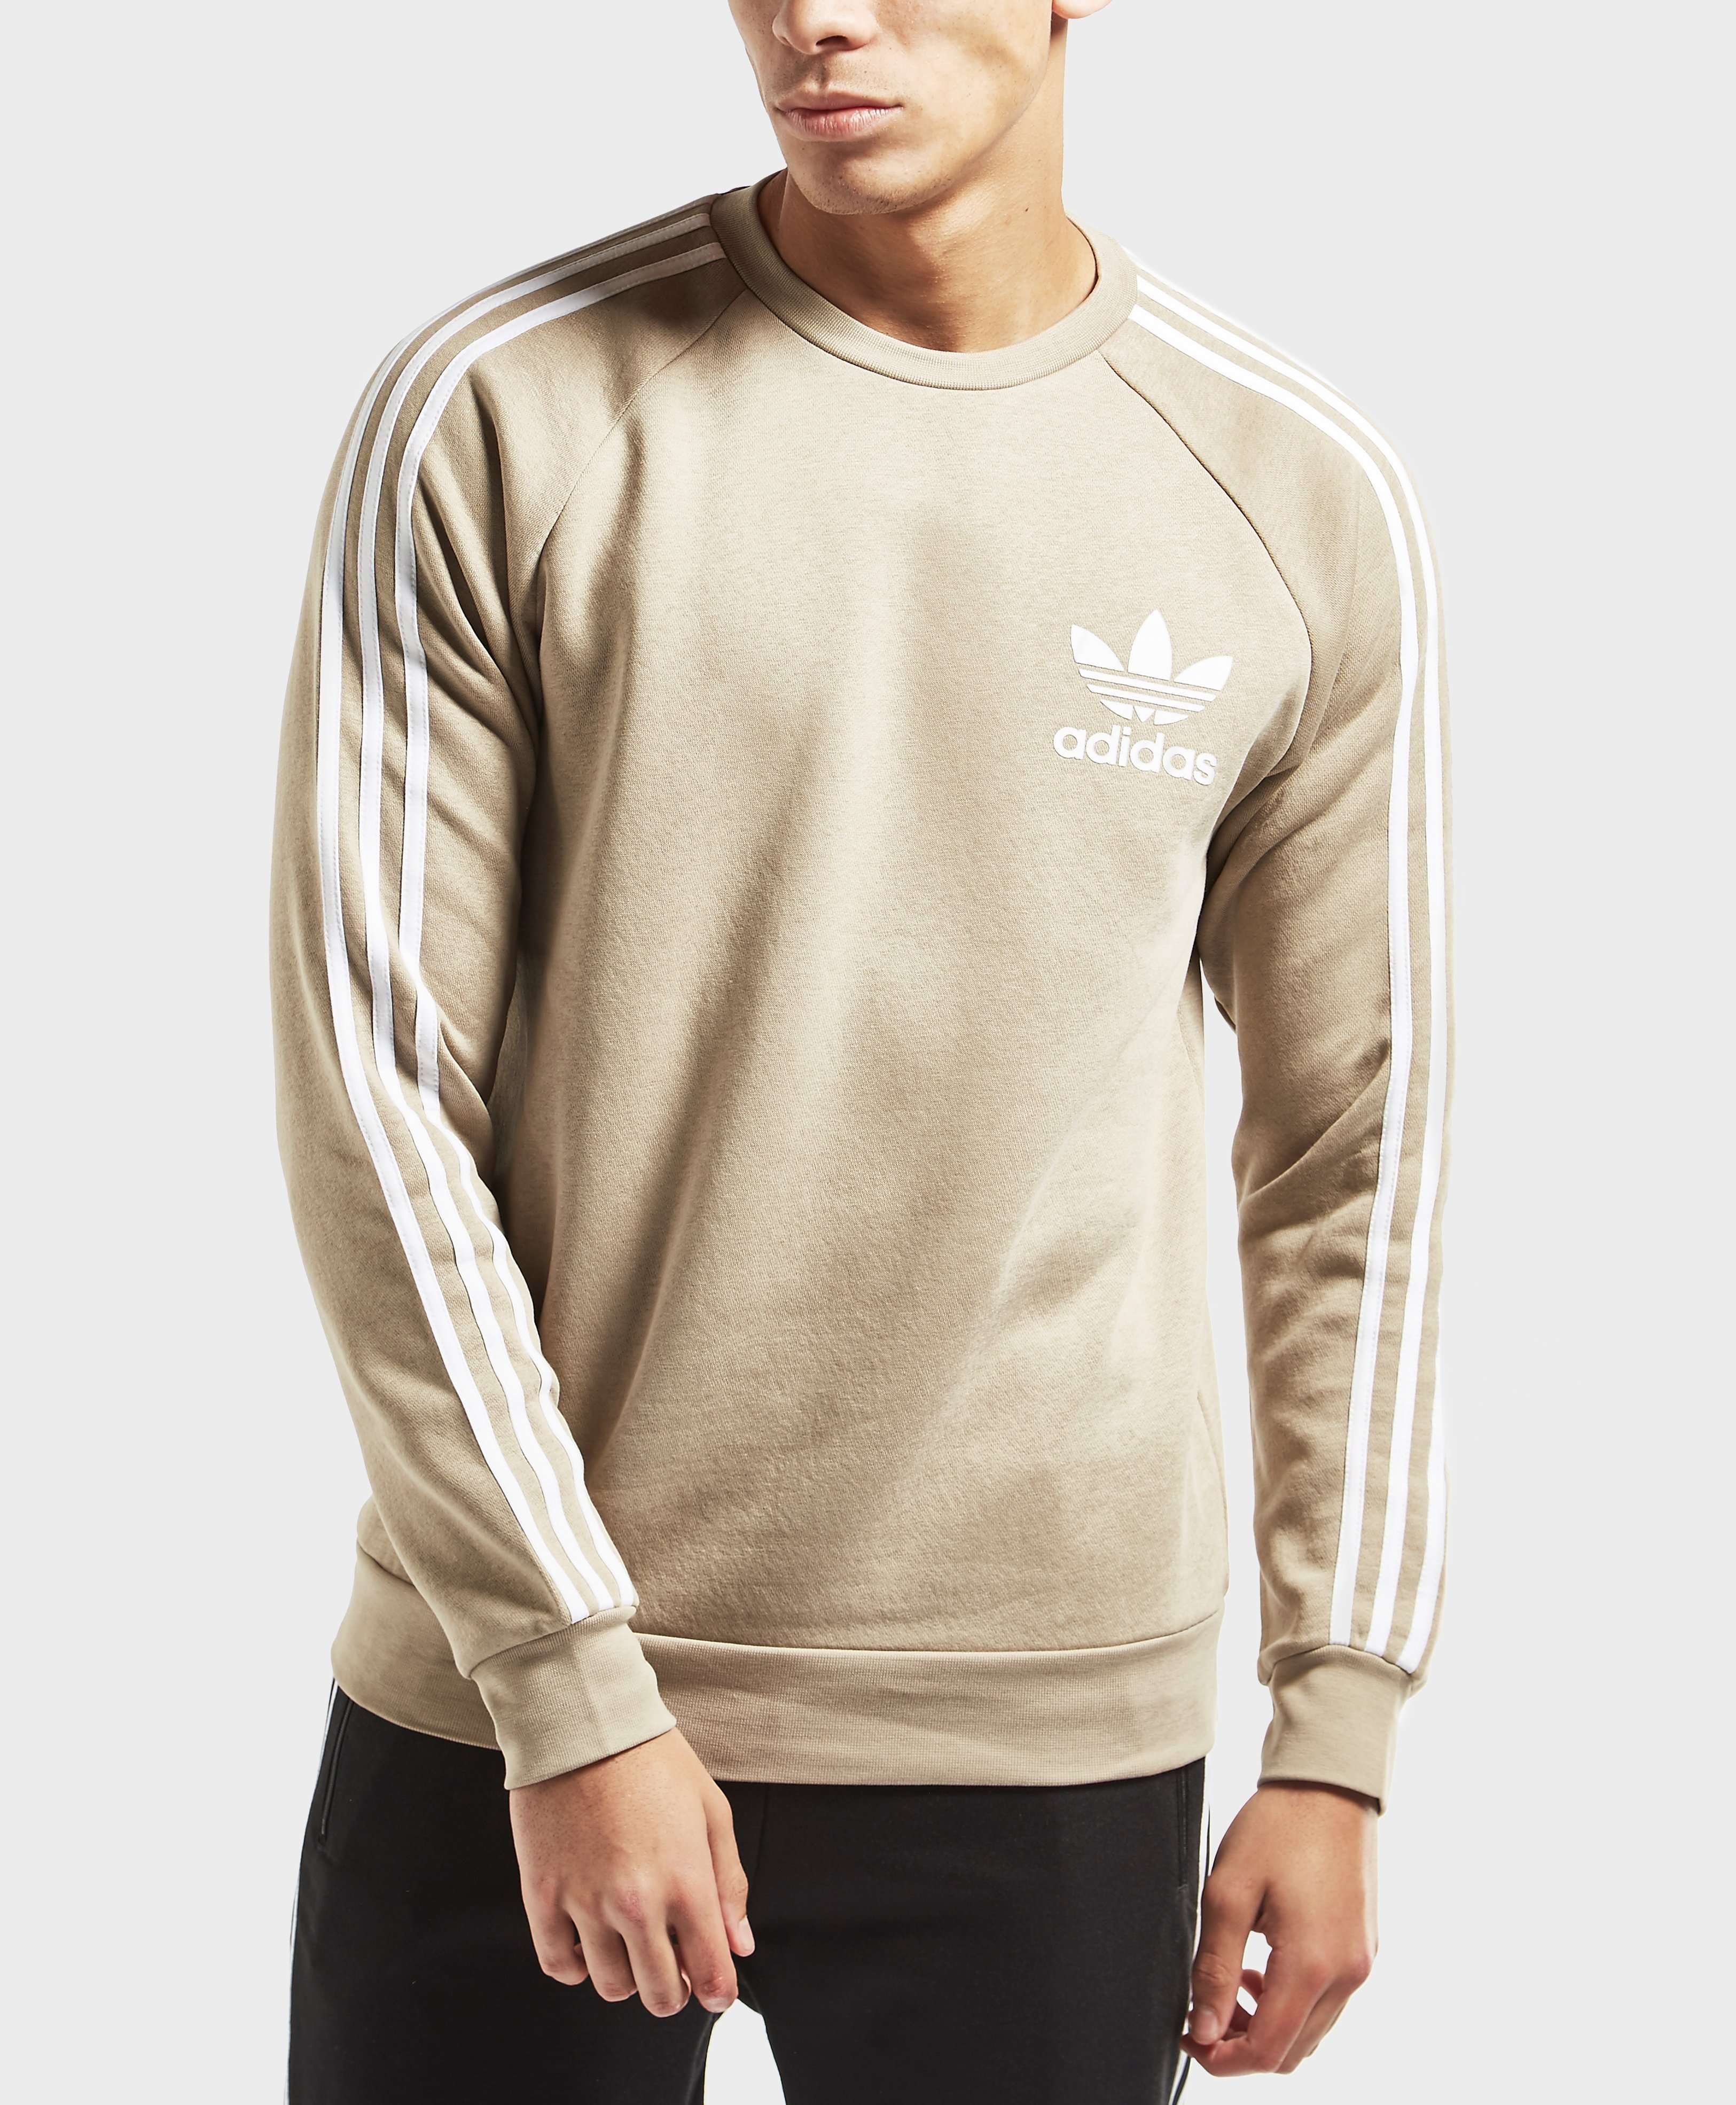 check out hot product amazon adidas Originals California Crew Neck Sweatshirt | scotts ...